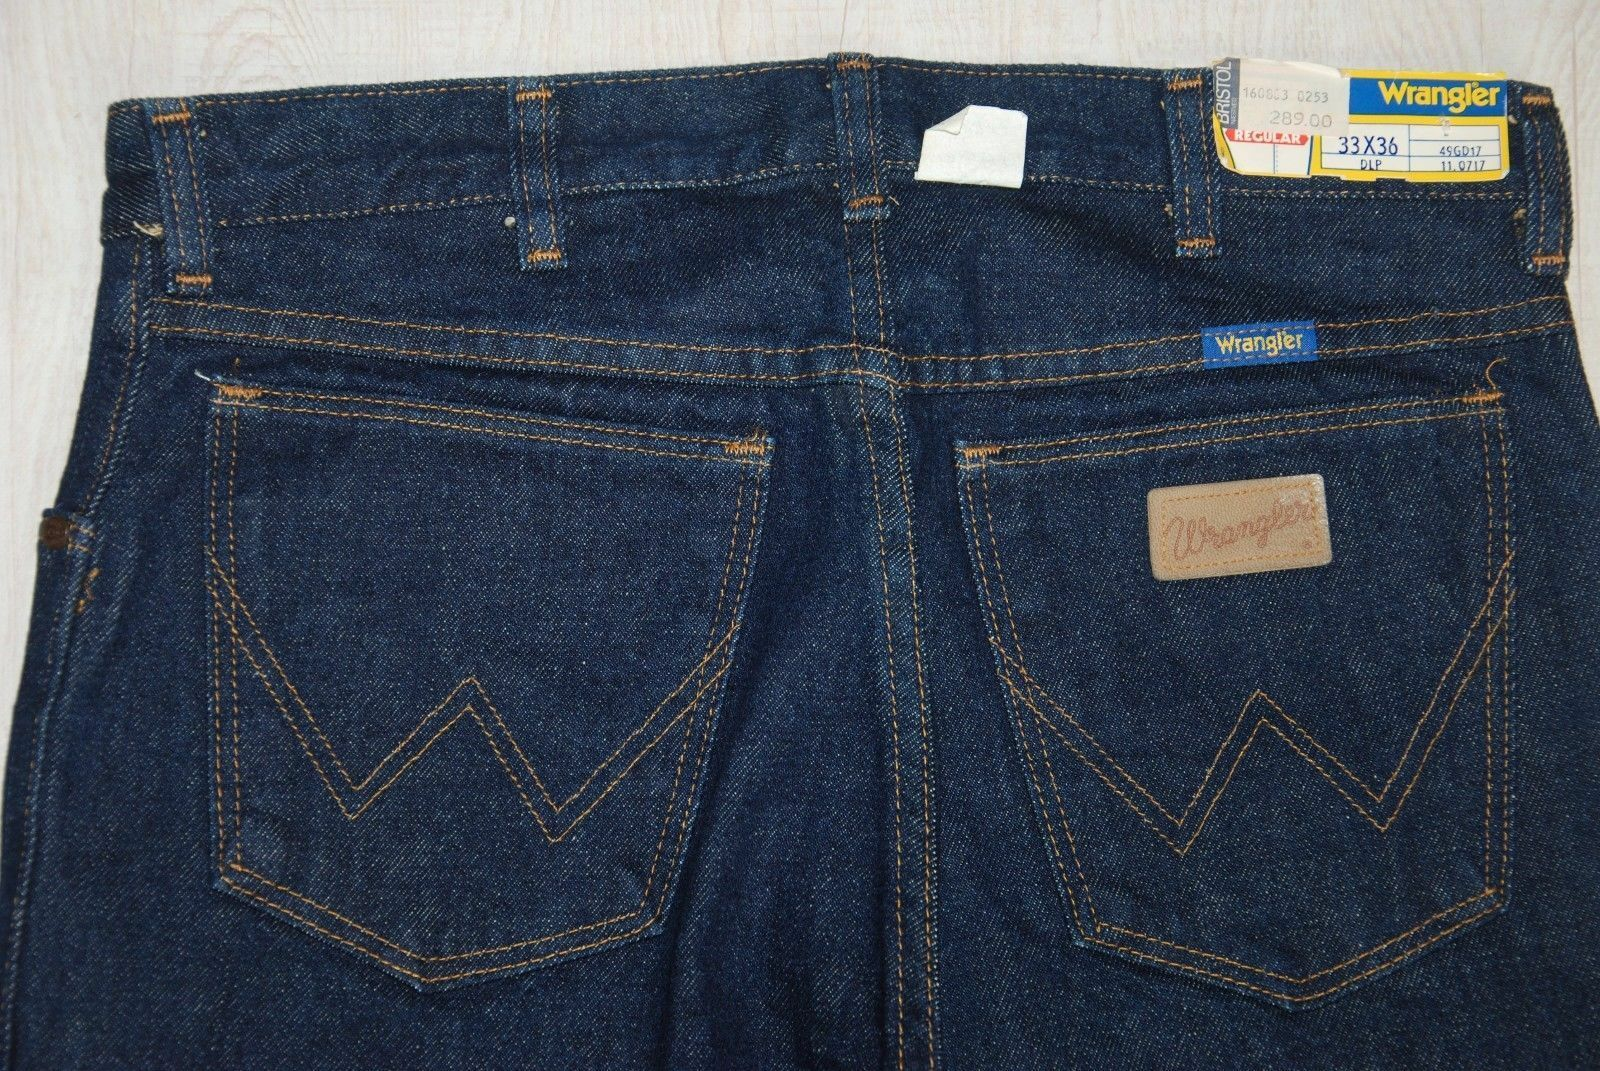 NWT VINTAGE WRANGLER JEANS REGULAR STRAIGHT CLASSIC blueE LONG MOM HIGH 30 31 L36